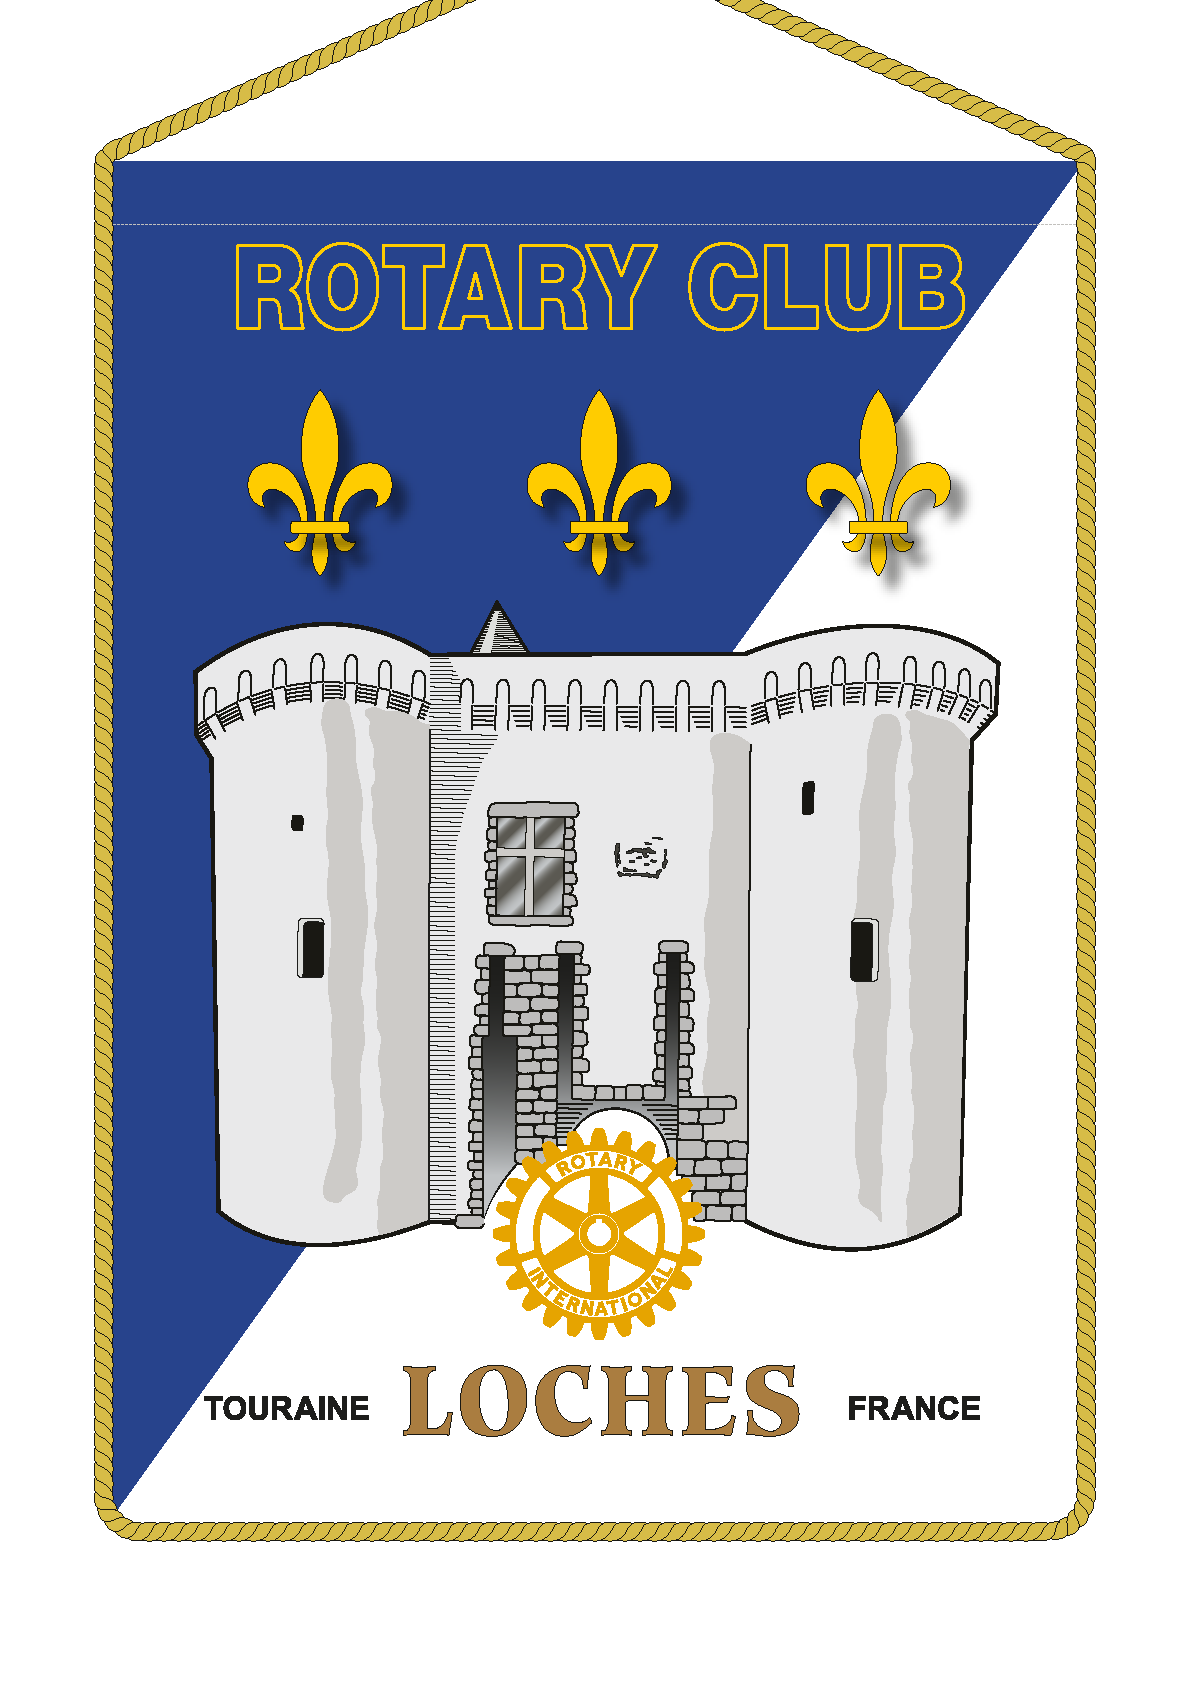 FANION ROTARY CLUB LOCHES